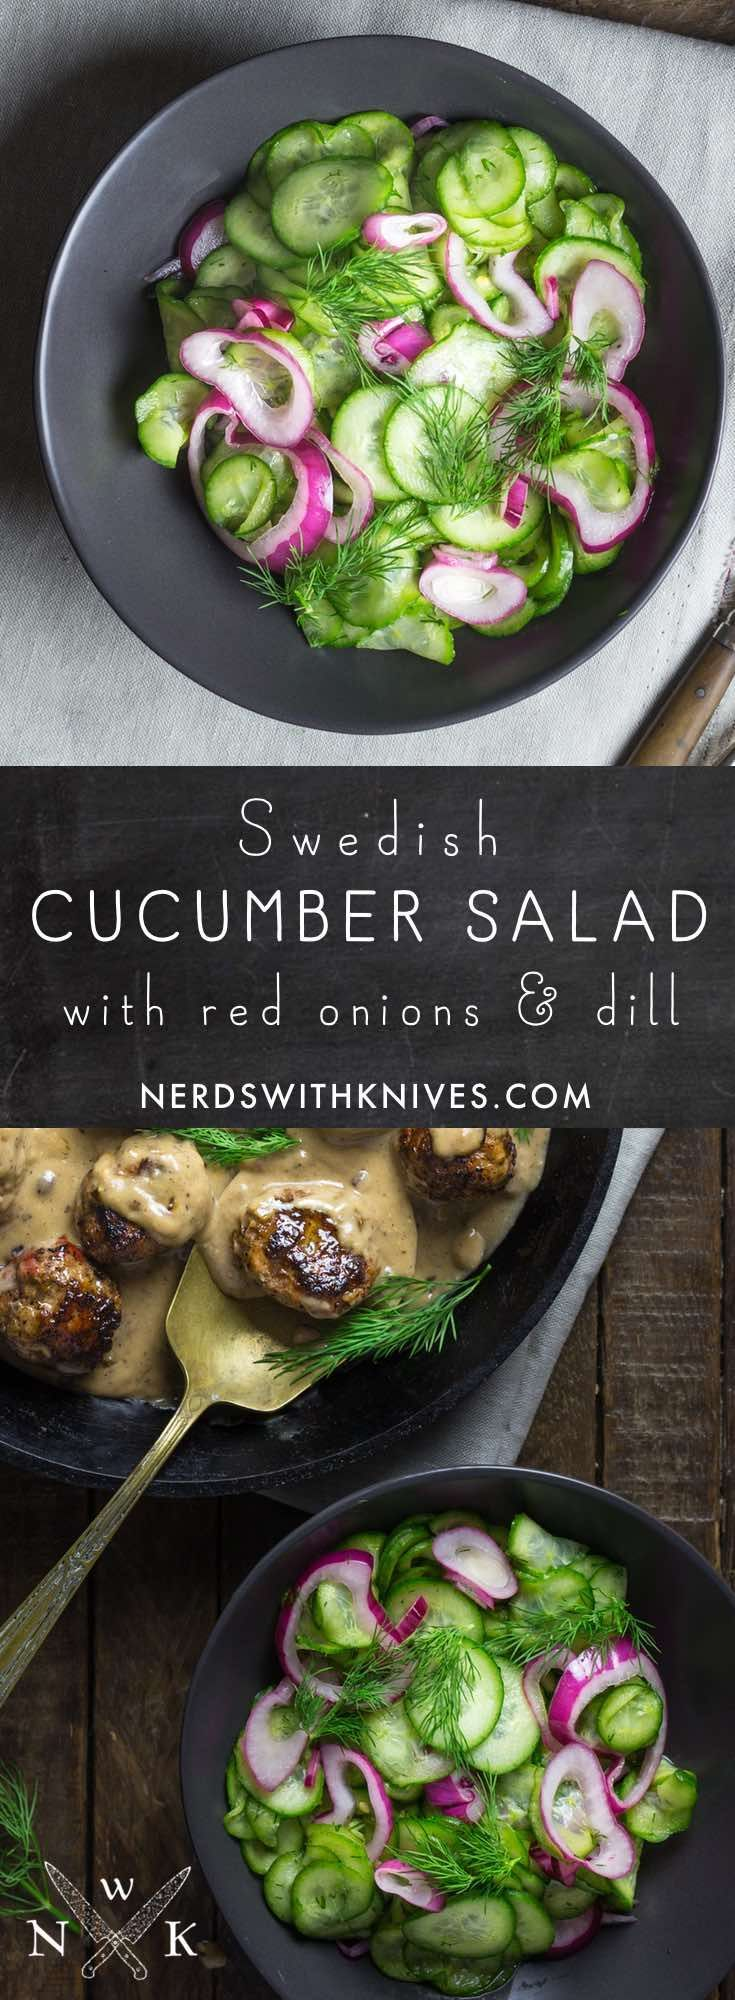 Swedish Cucumber and Red Onion Salad with Dill is light and refreshing with the perfect balance of sweet and tart.